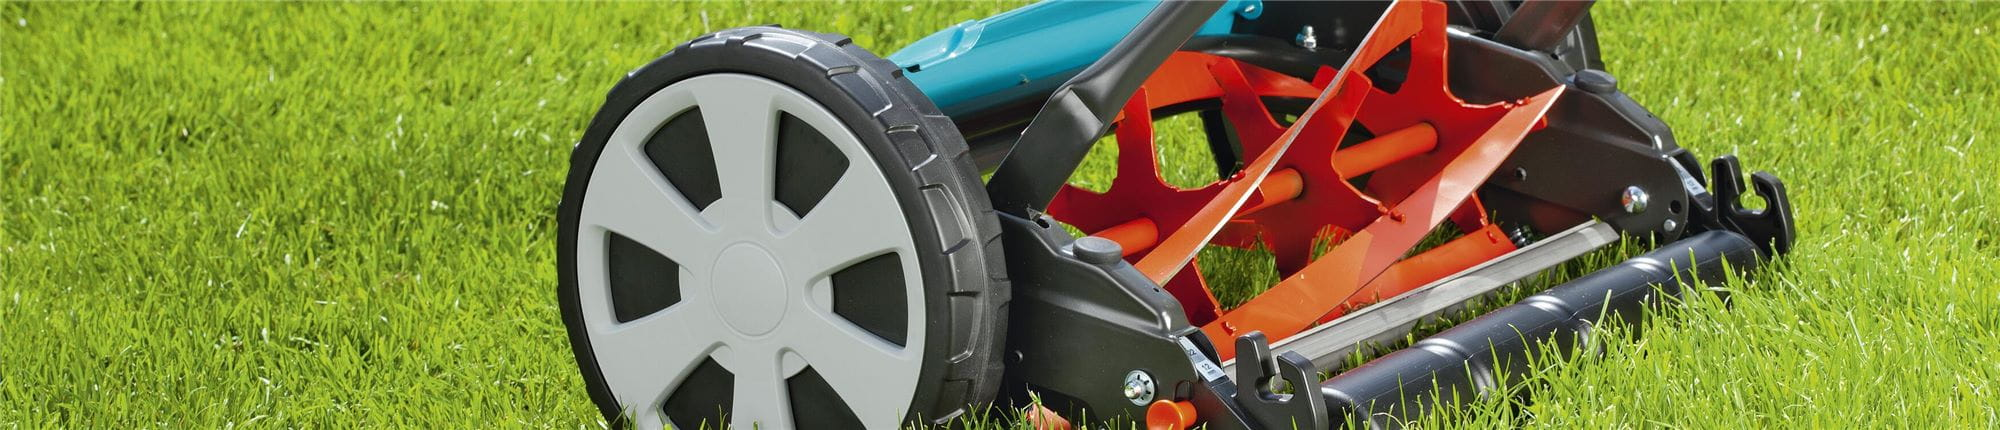 Cylinder lawnmower